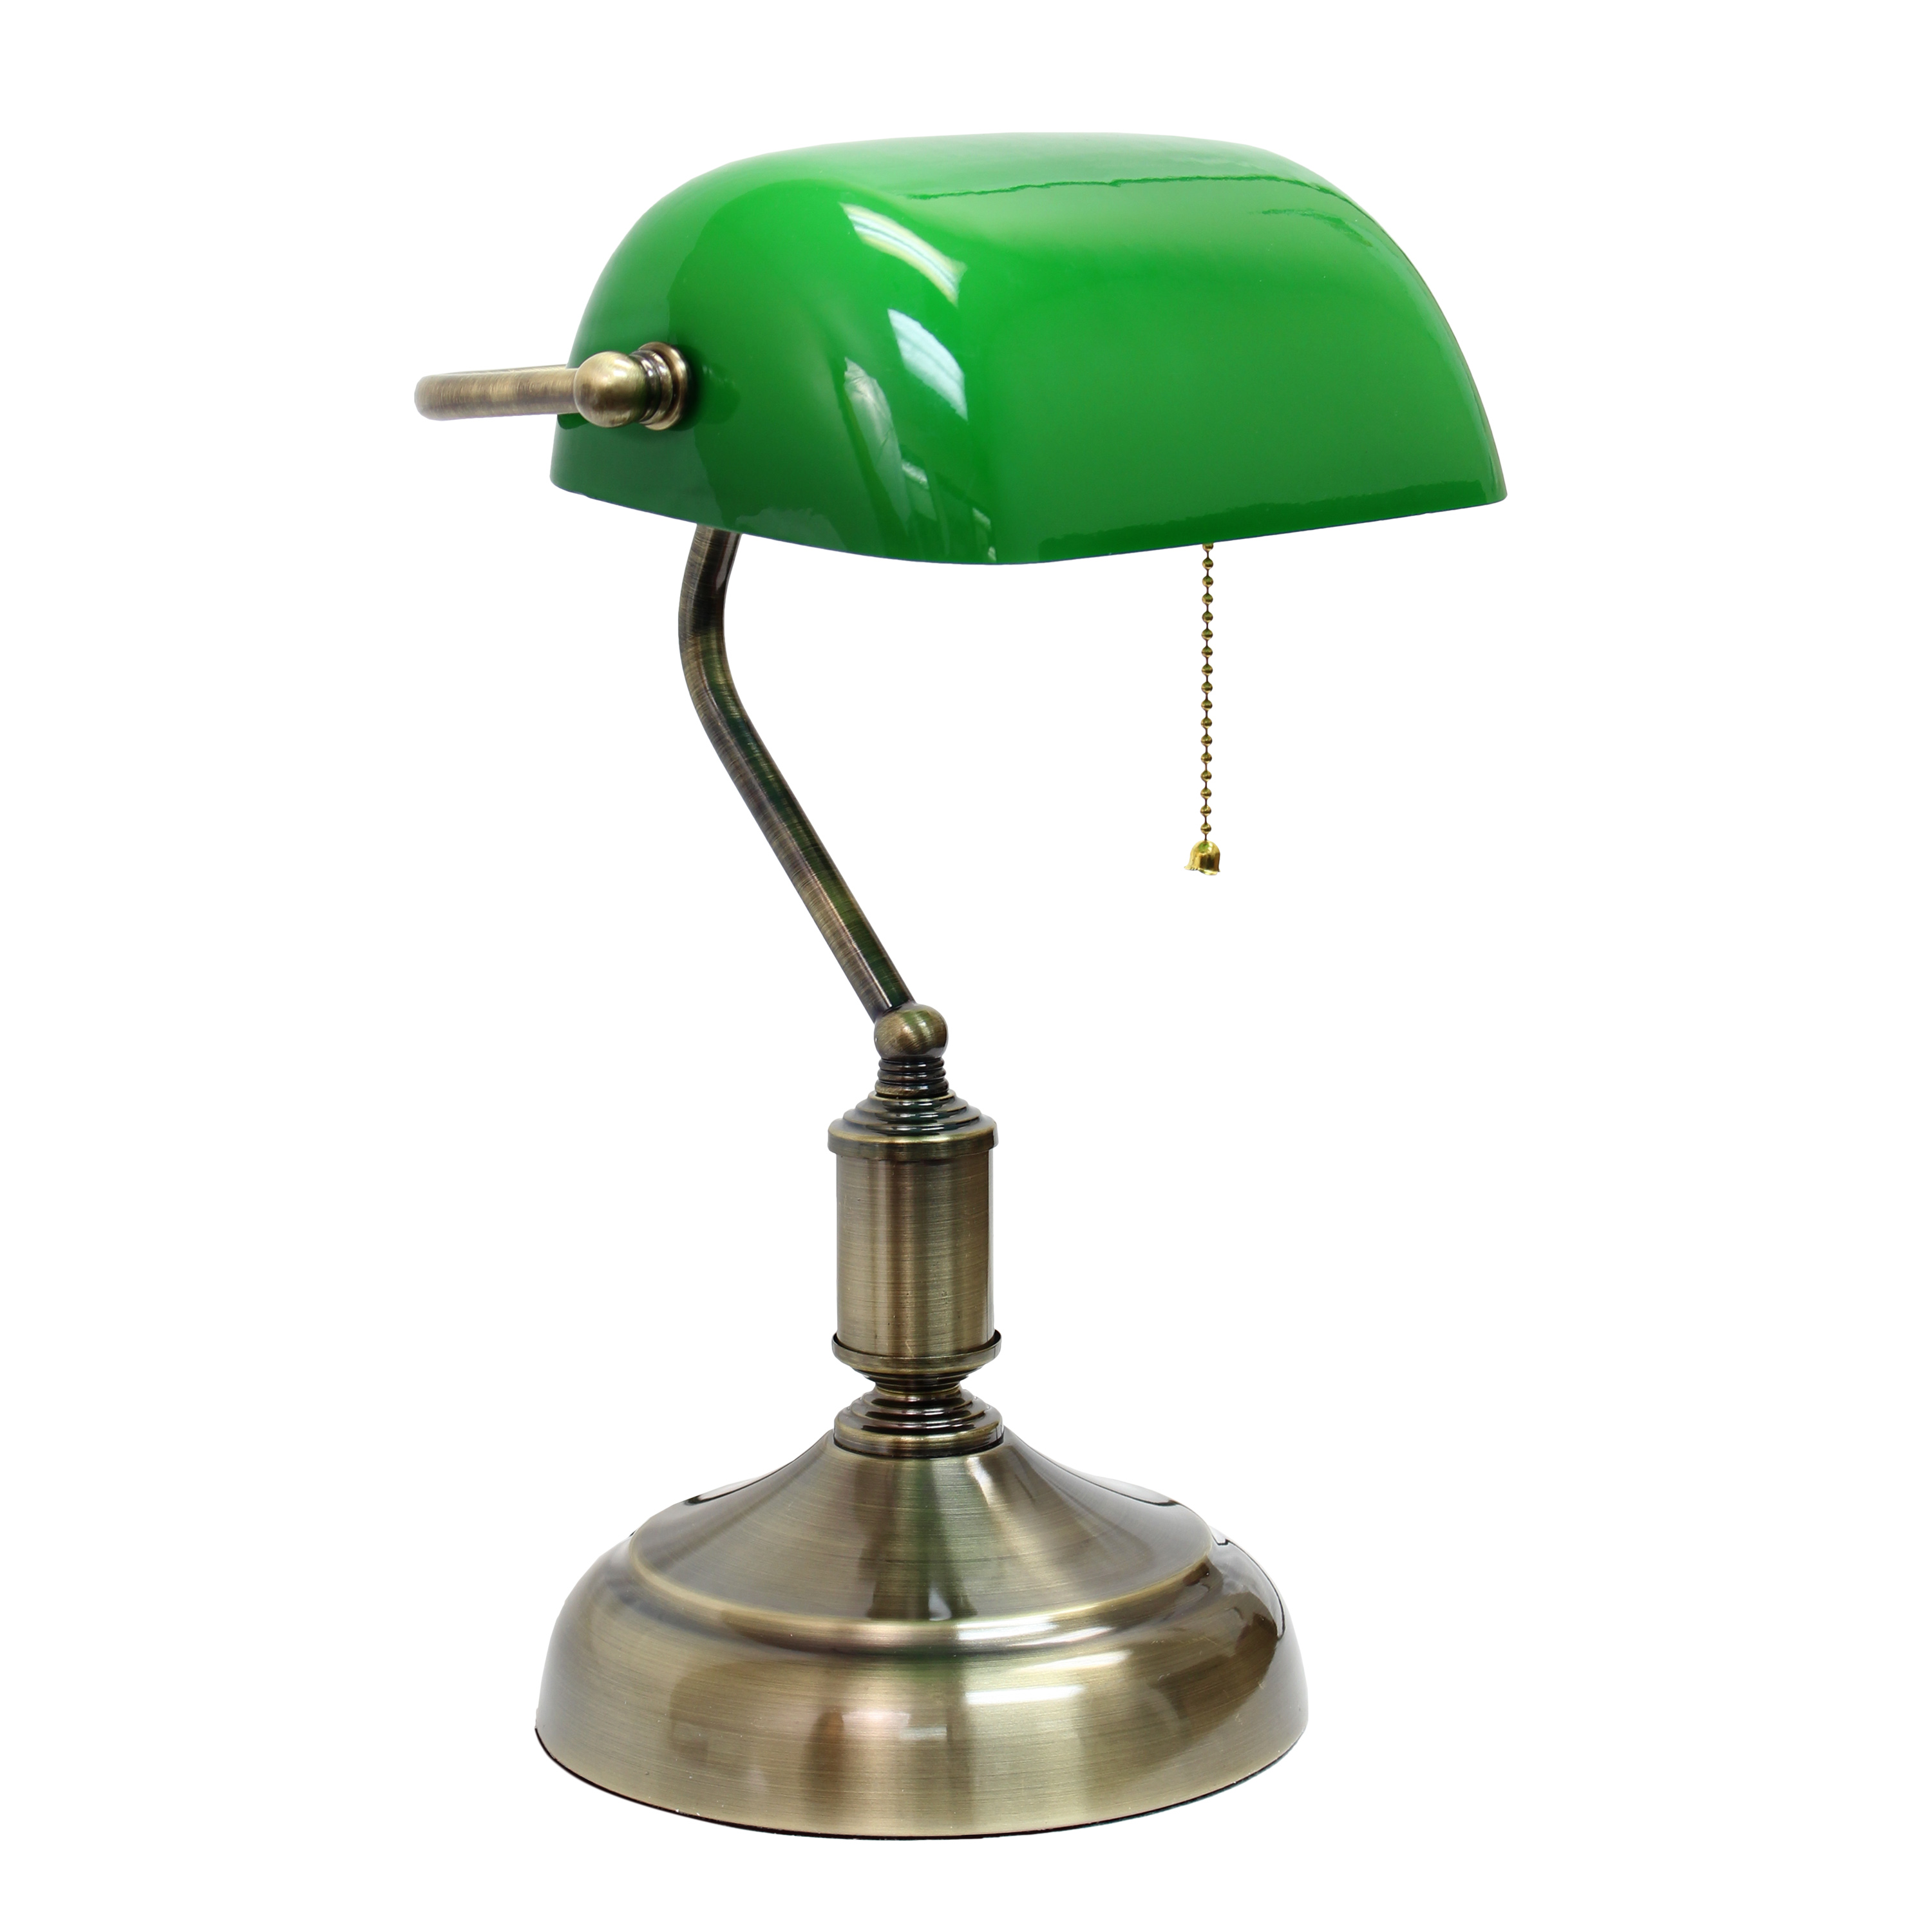 Simple Designs Executive Banker's Desk Lamp with Glass Shade, Green